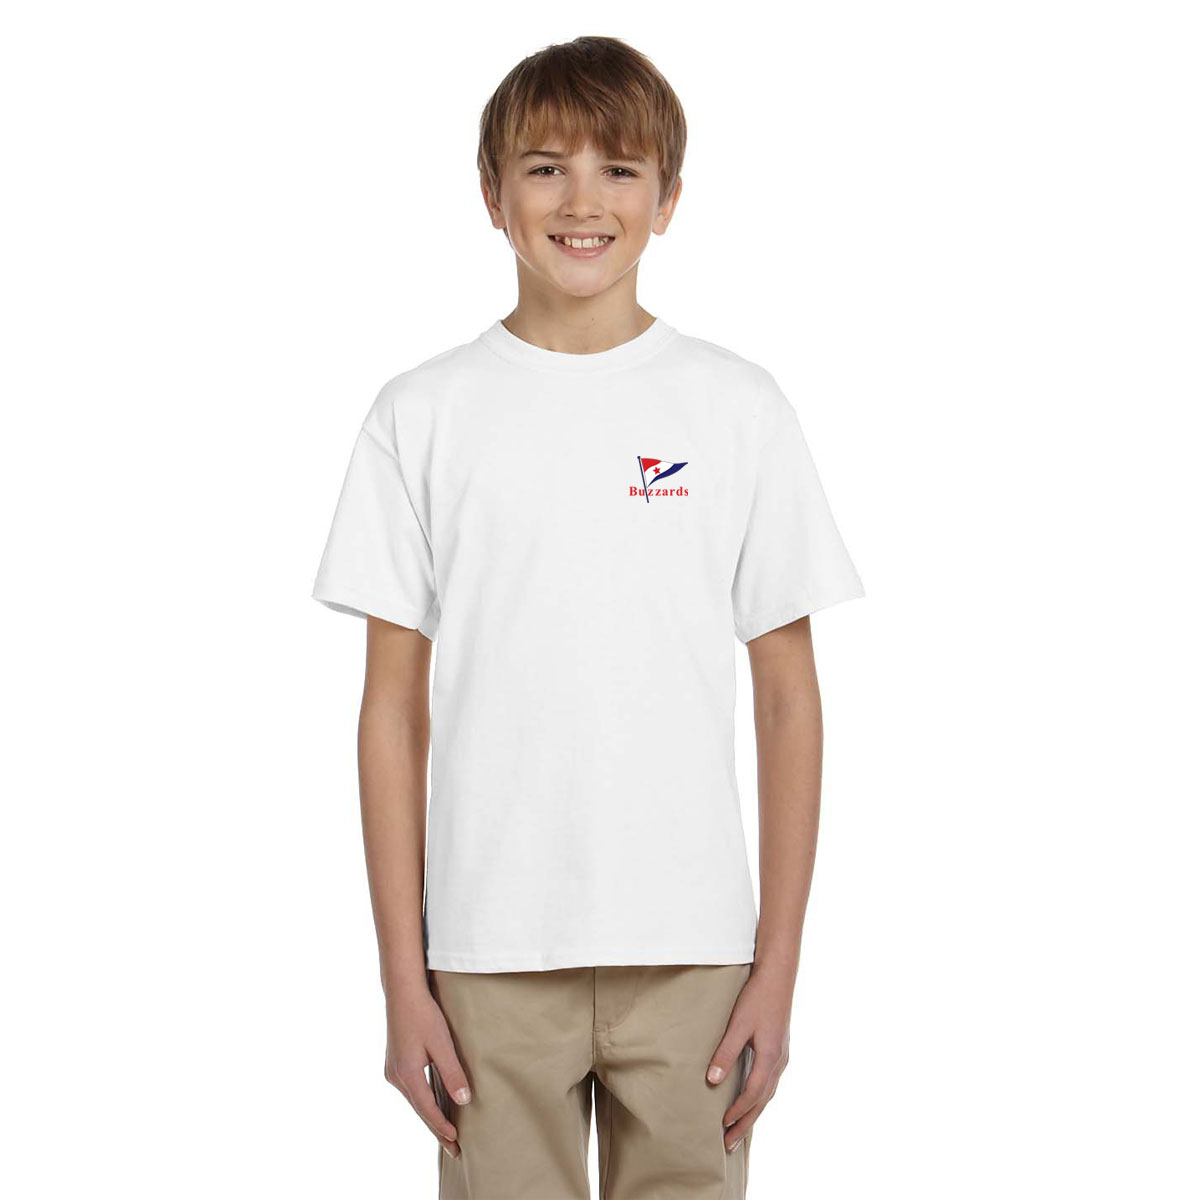 Buzzards Yacht Club -  Kid's Short Sleeve Cotton Tee (BUZ203)